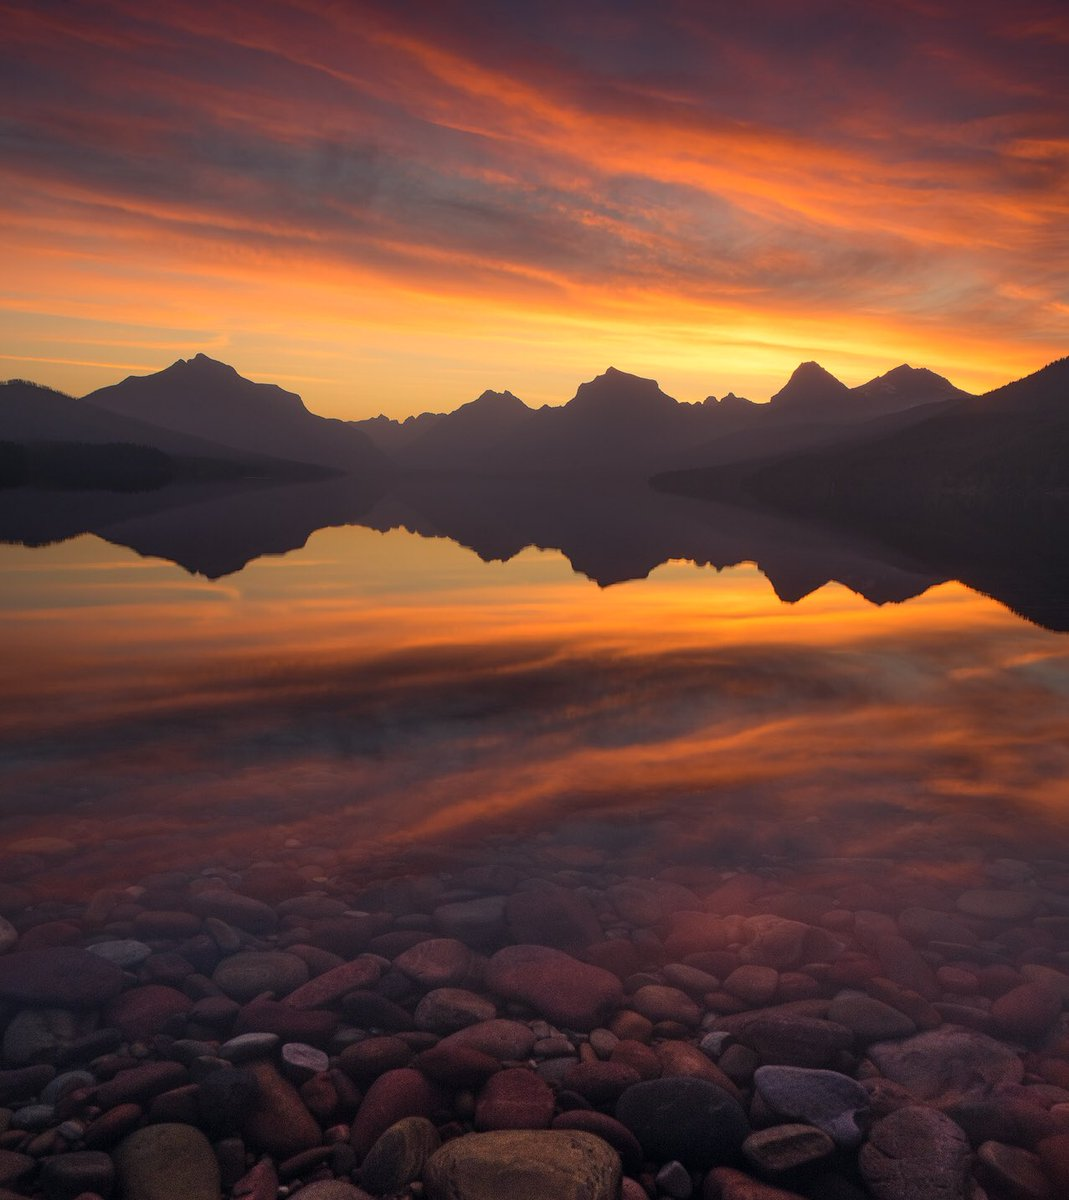 With mountains silhouetted against the sky, Lake McDonald @GlacierNPS reflects a briliant sunrise. Pic by Matt Meisenheimer (sharetheexperience.org) #Montana